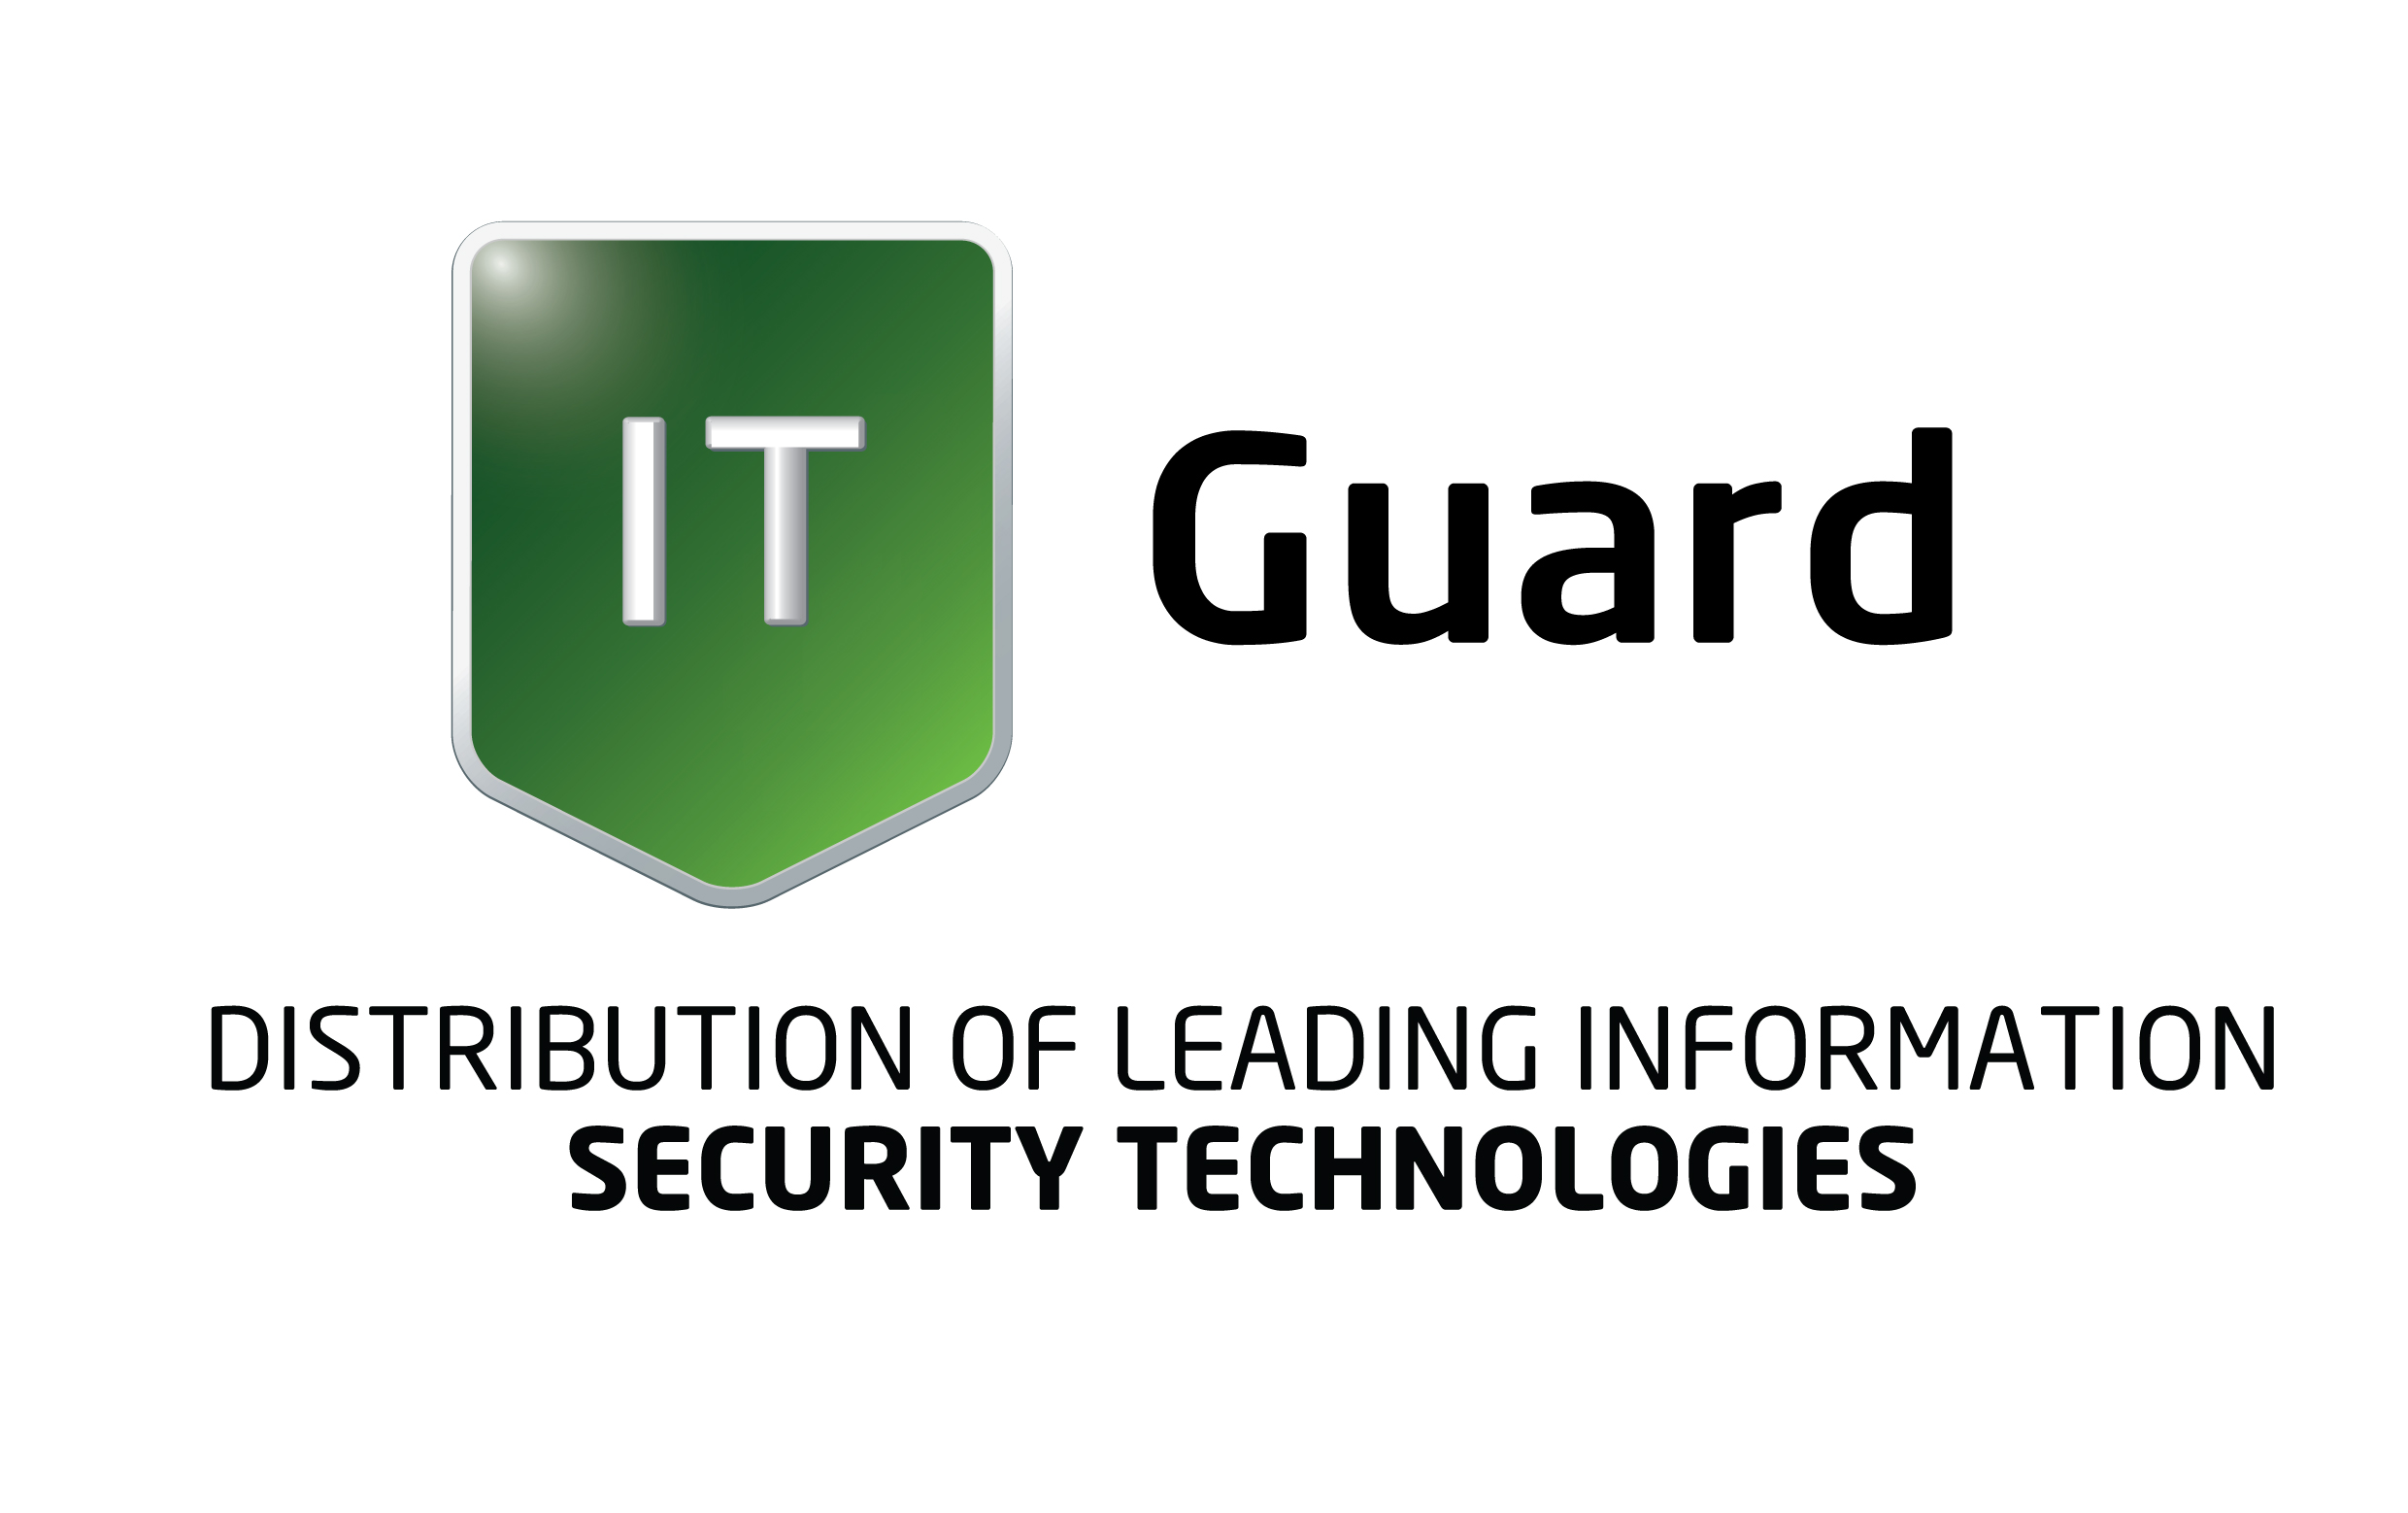 IT Guard Logo